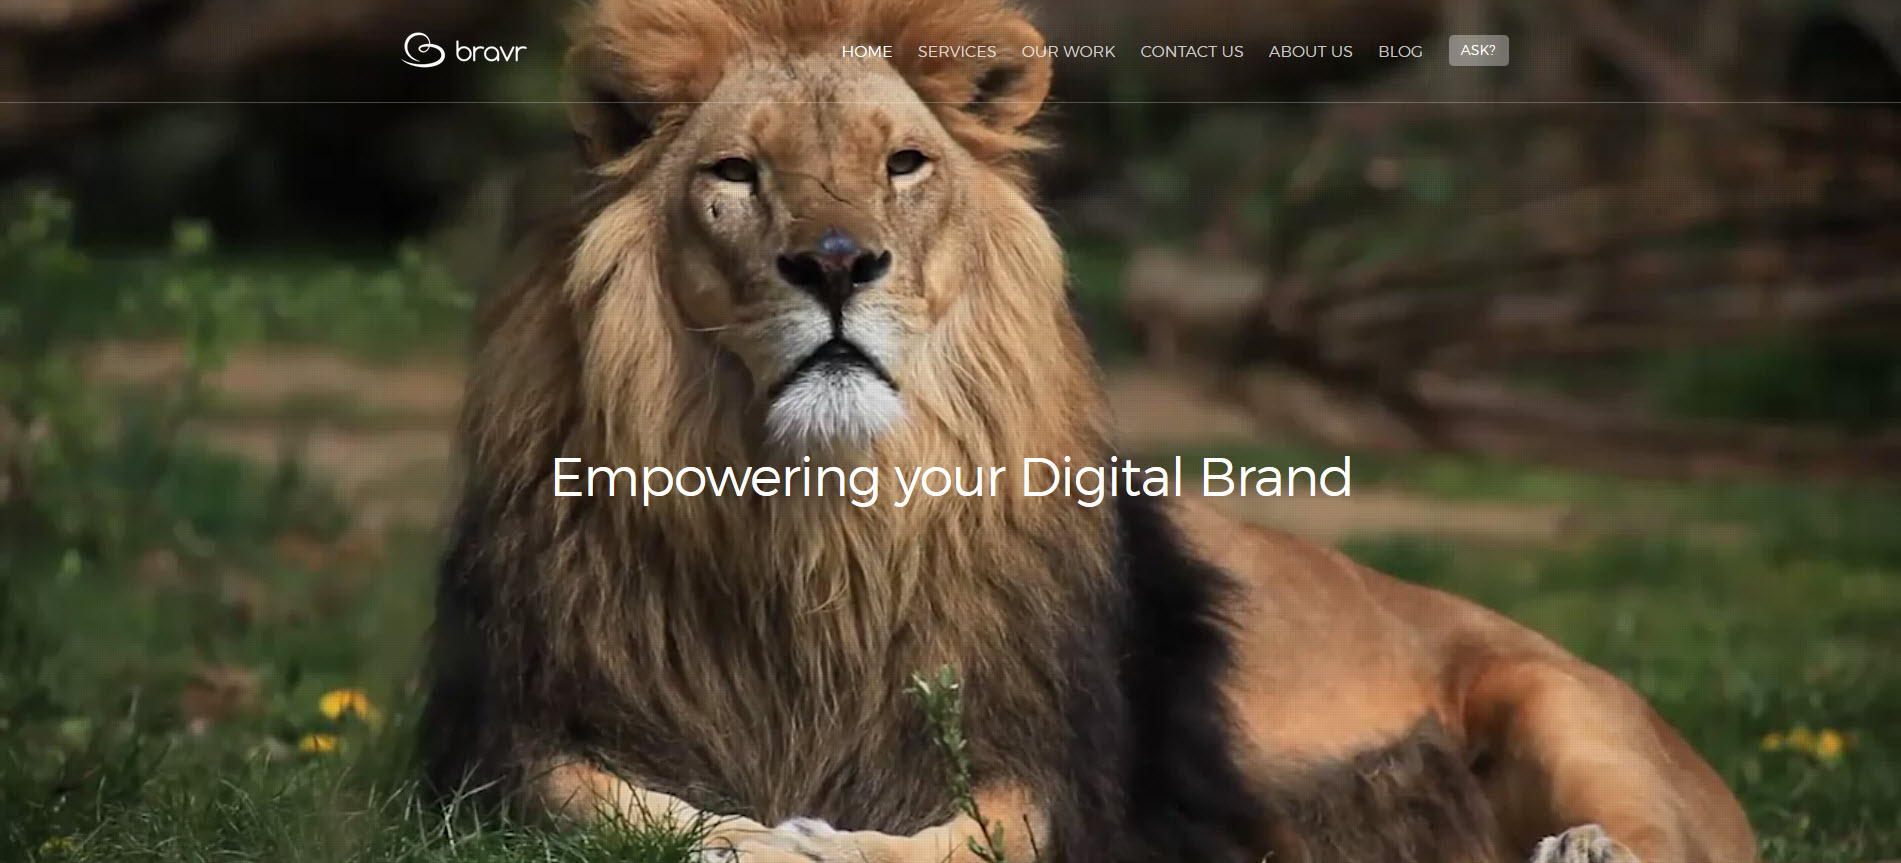 SEO Agency - Bravr Digital Marketing Agency